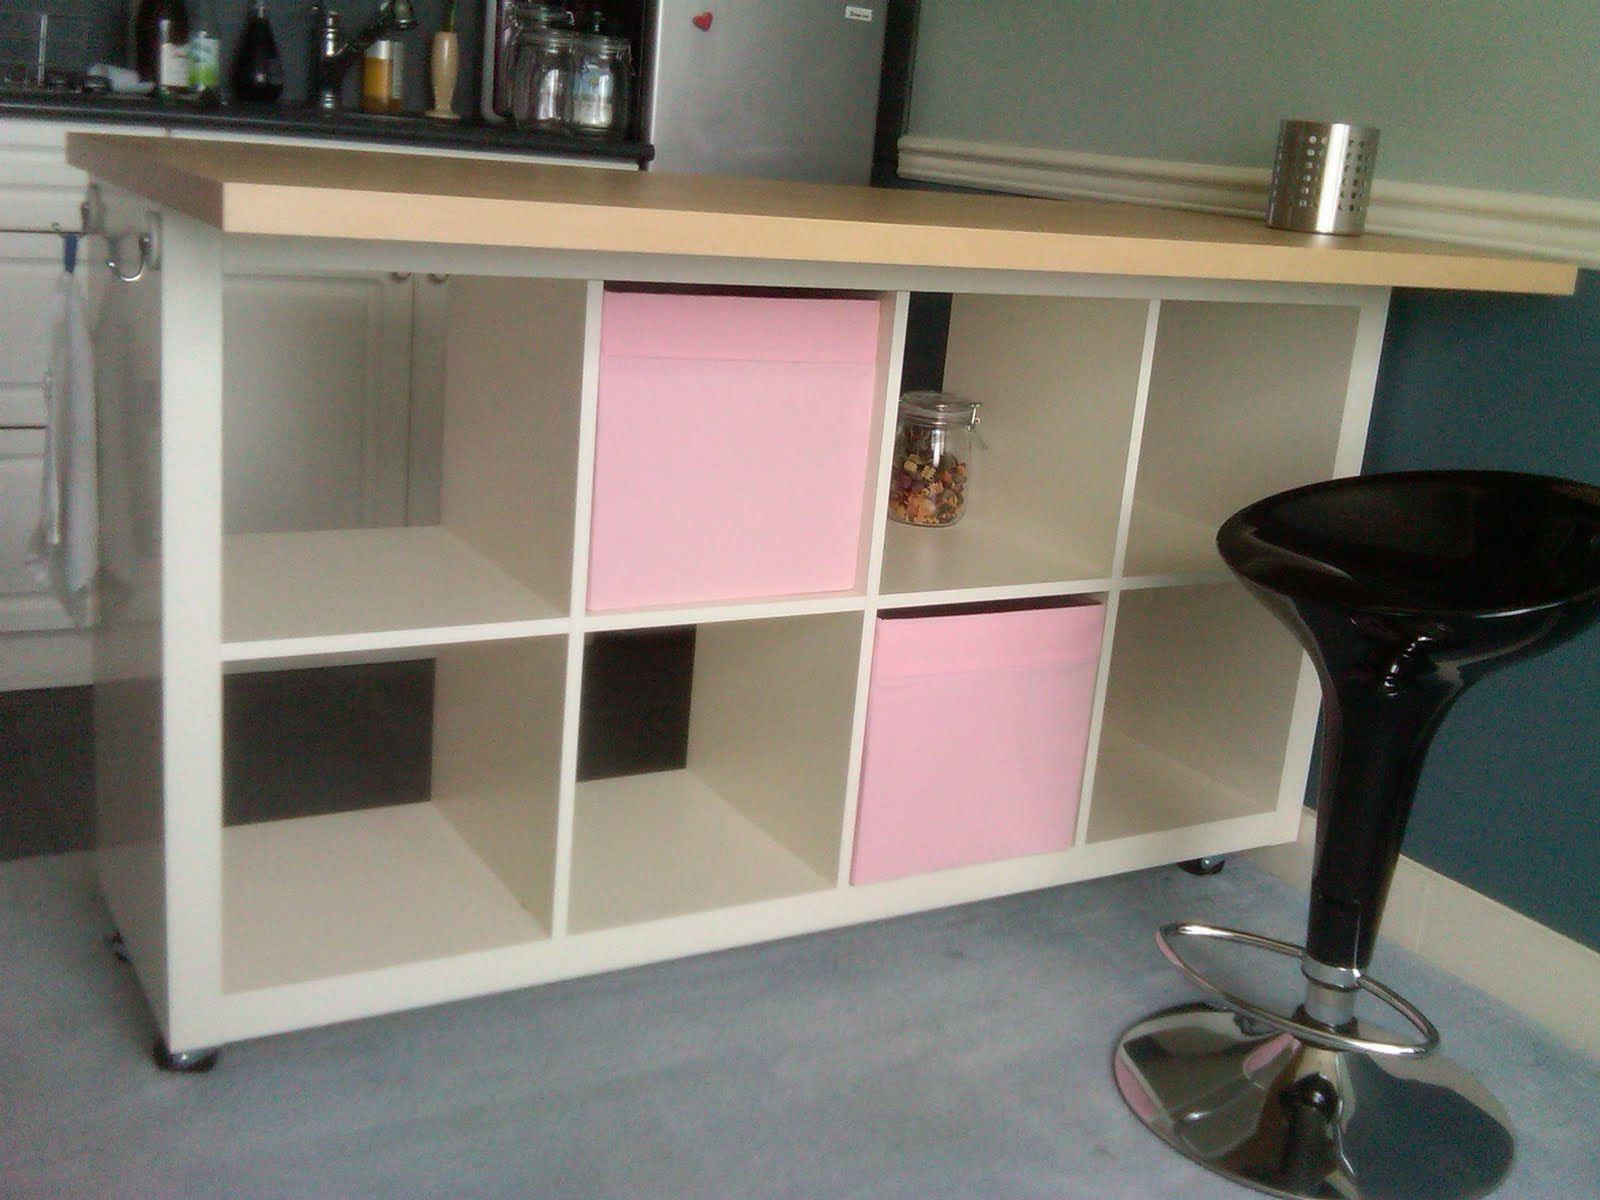 Diy Case Kitchen Island materials: expedit 2×4 bookcase, vika amon table top, casters from